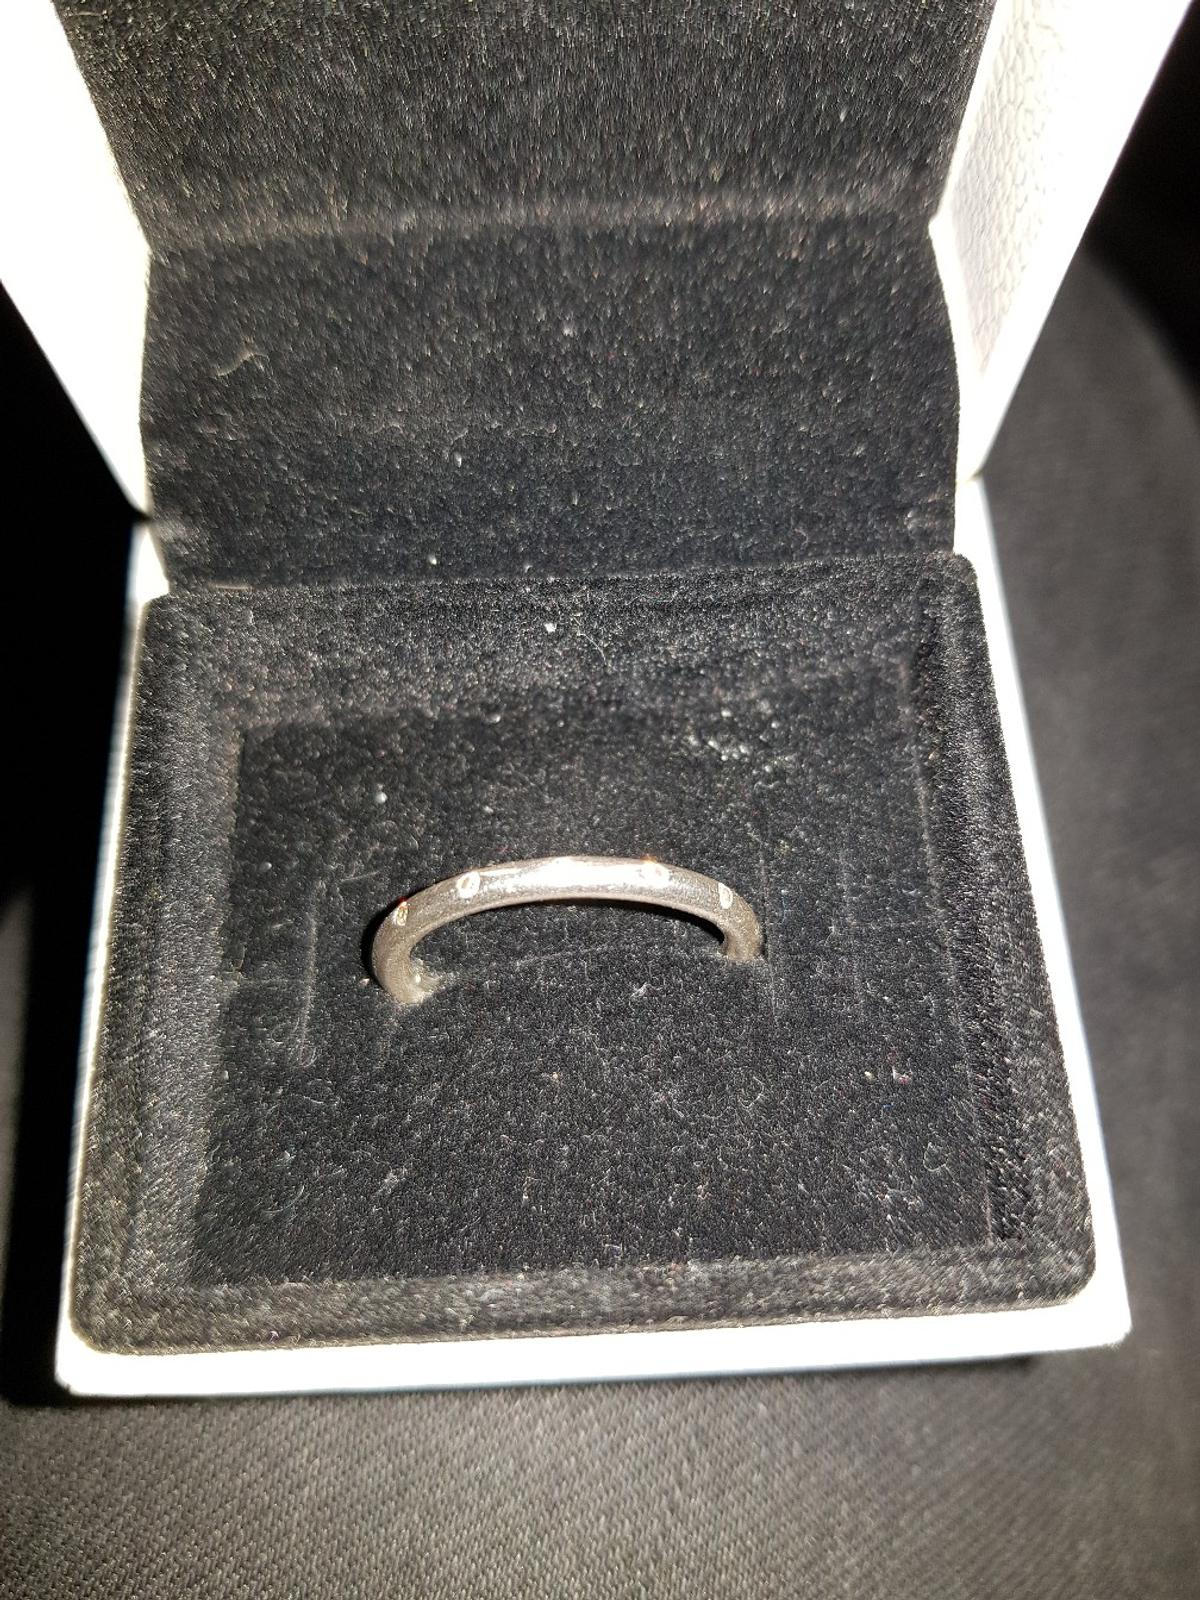 Pandora stacking ring with cz stones all round. comes with box. Collection Only